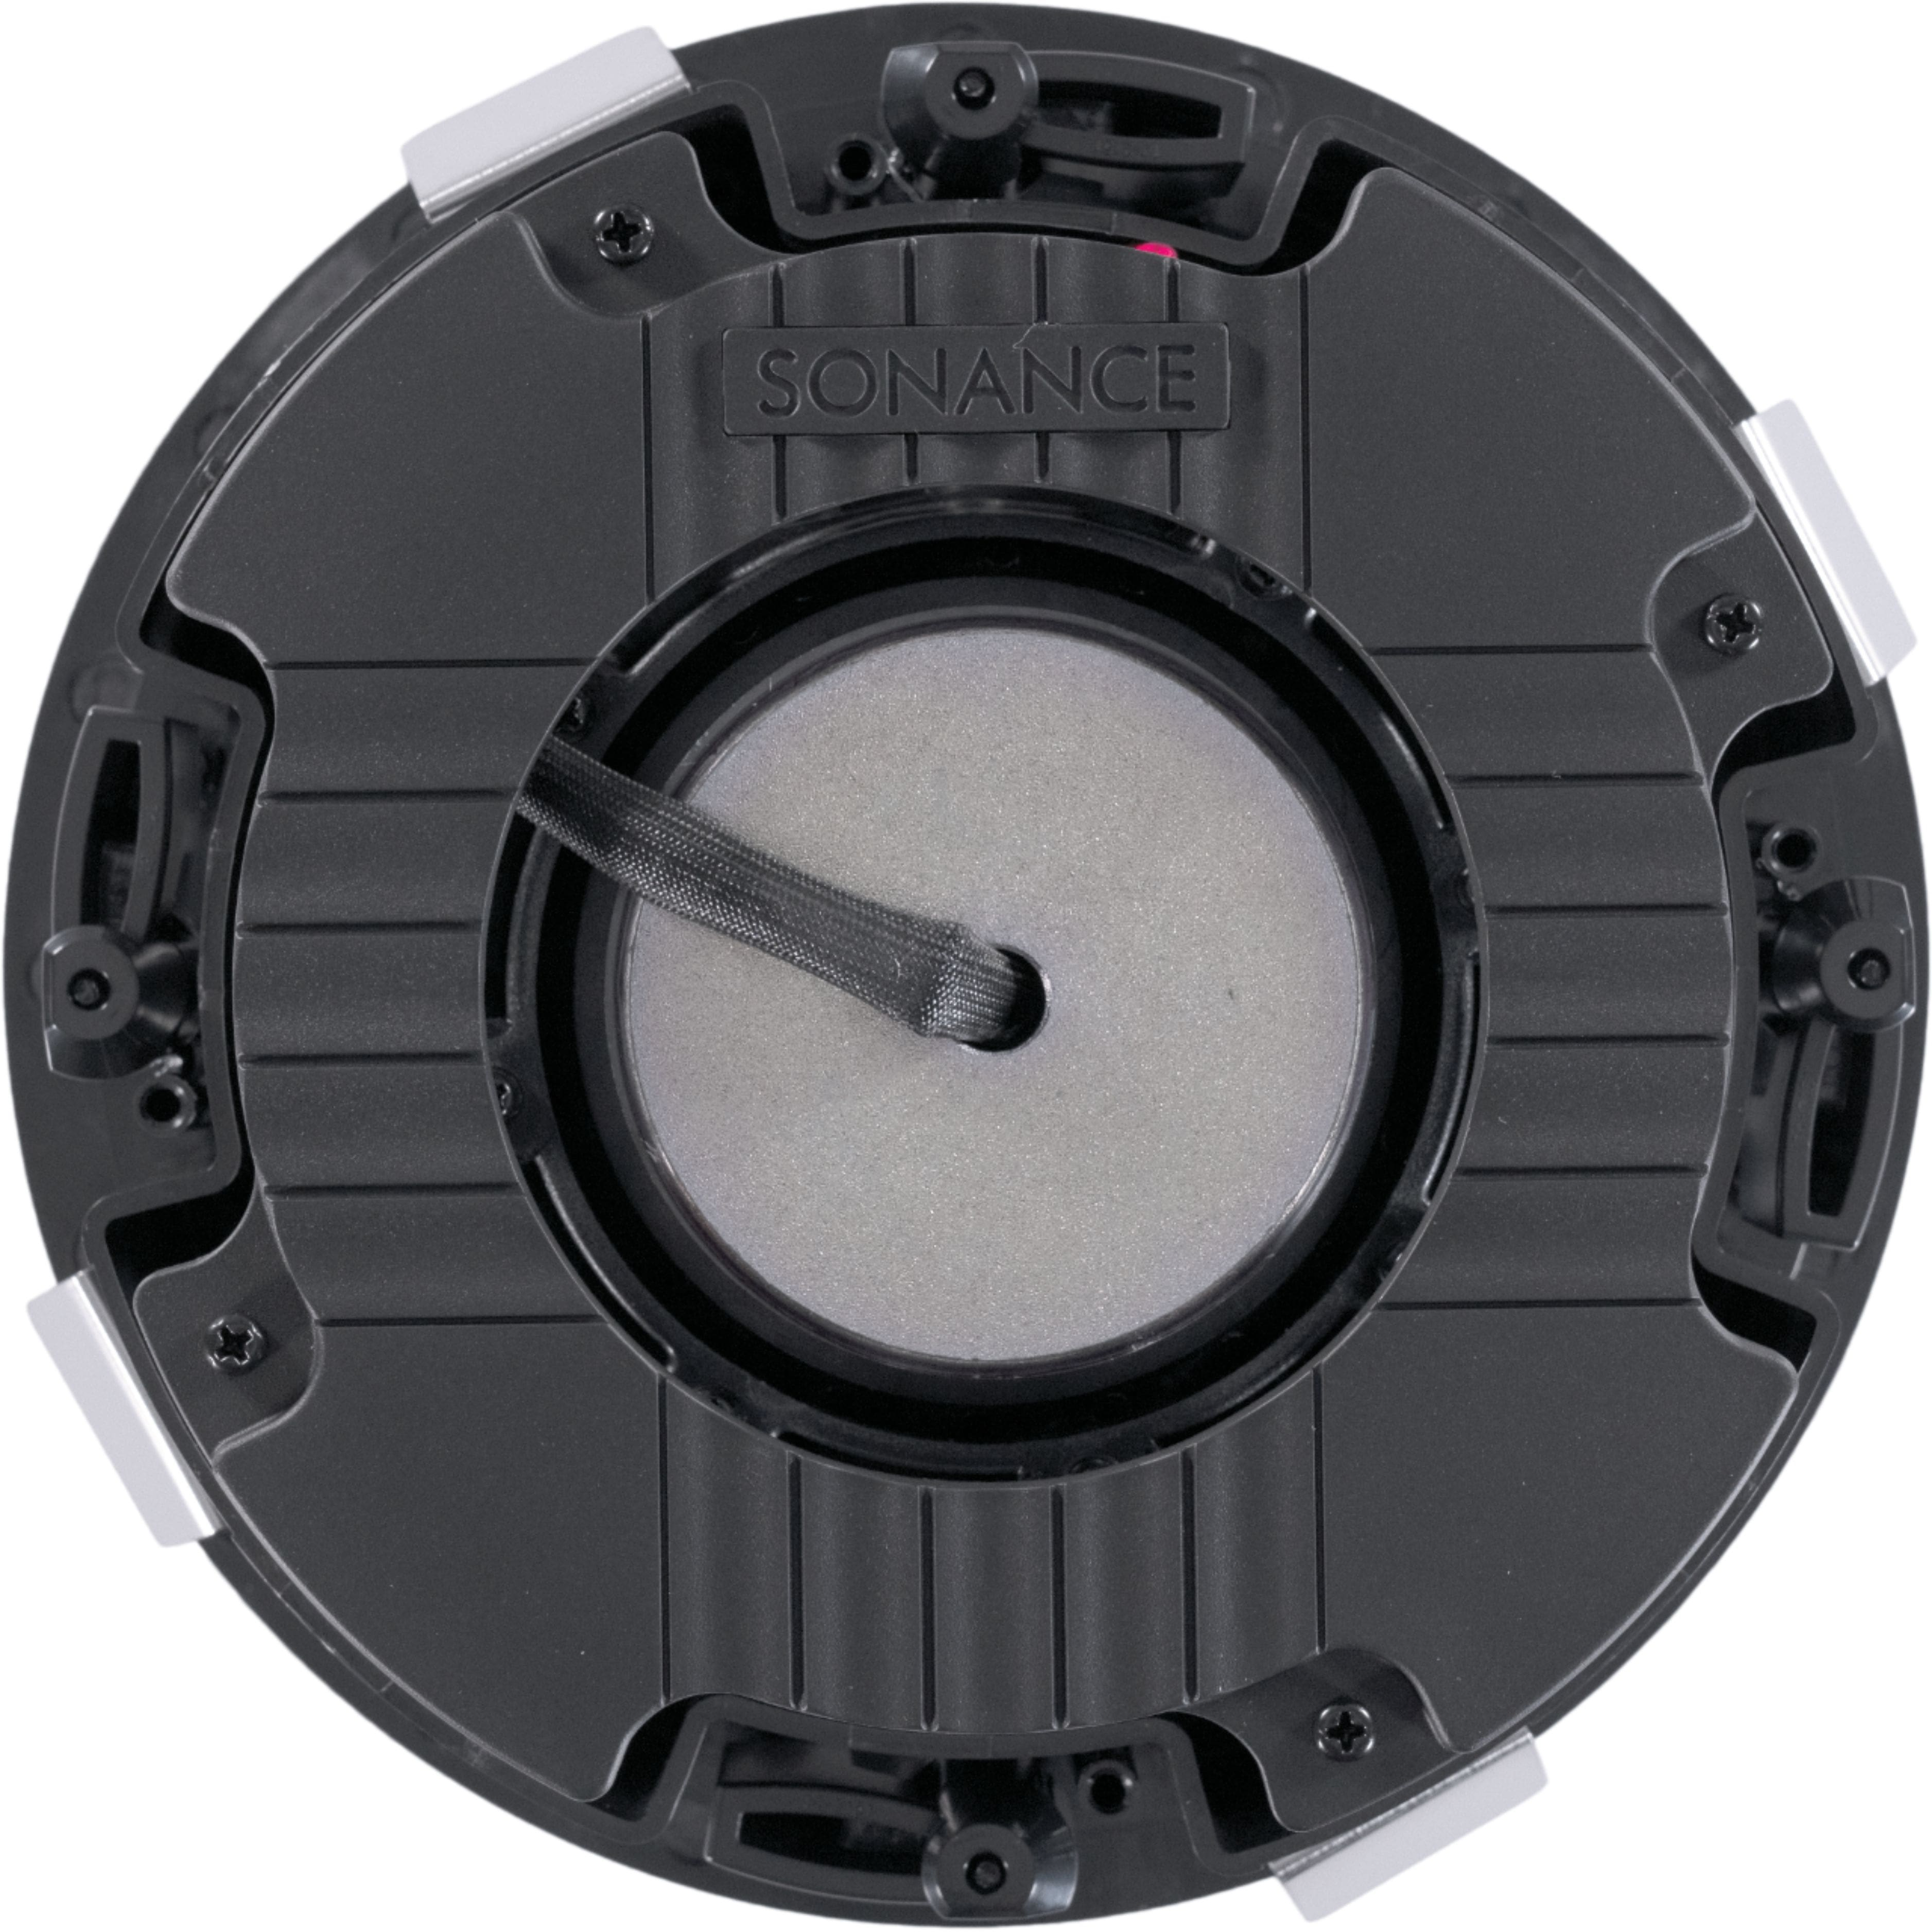 Sonance In-ceiling Speaker pair $150